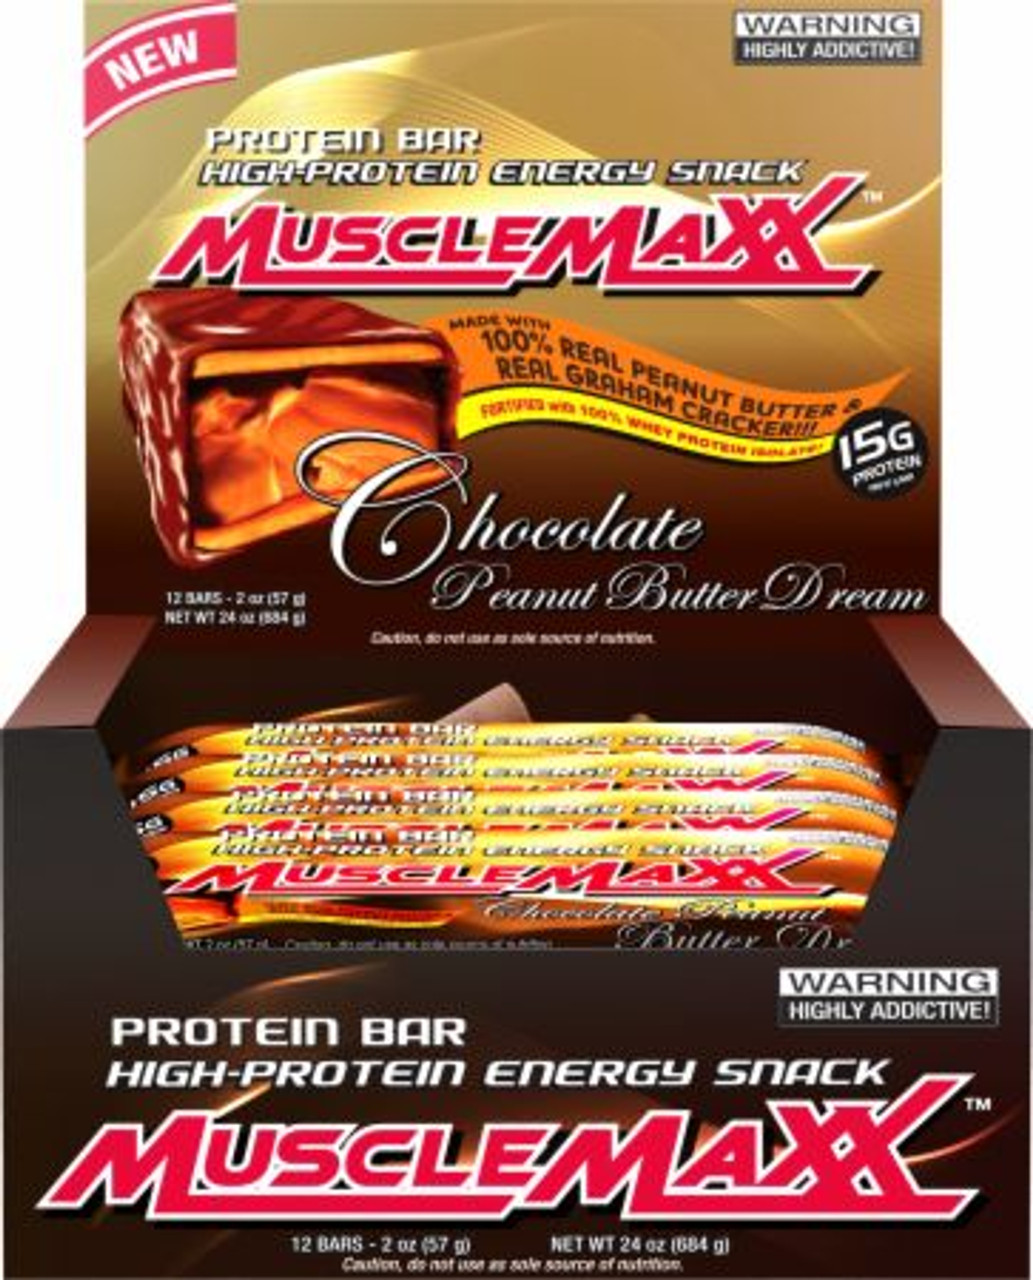 Clearance MuscleMaxx Bars 12ct